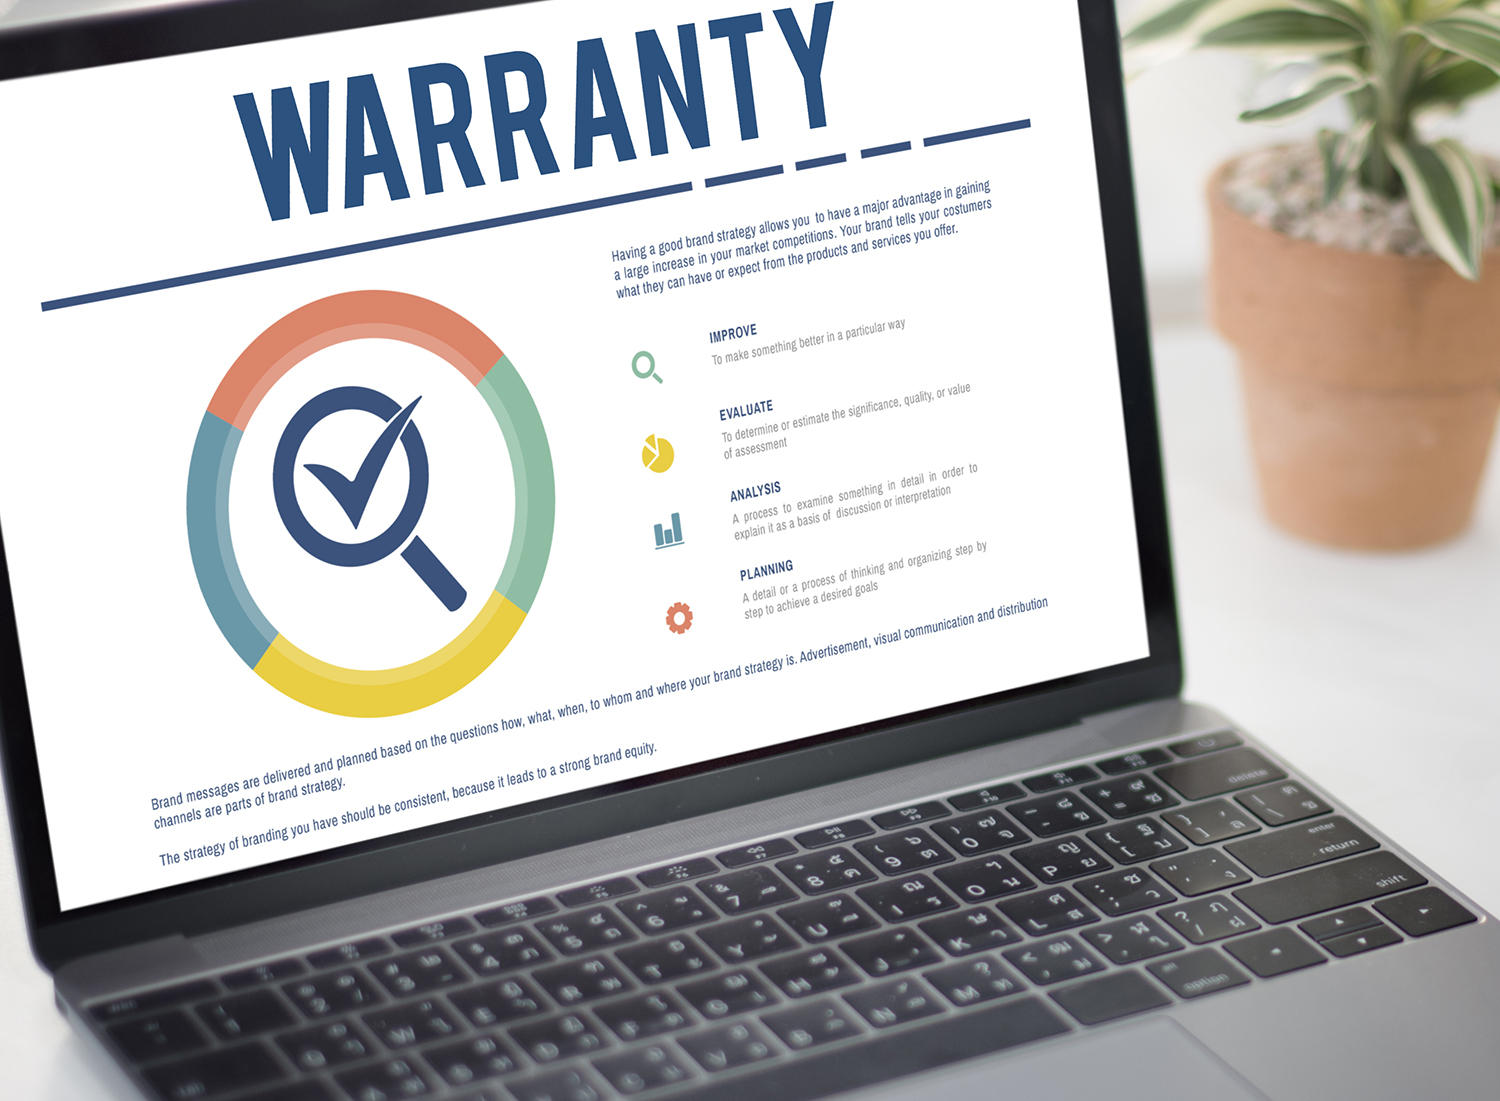 Warranty Management Services of Inspirisys Solutions Limited